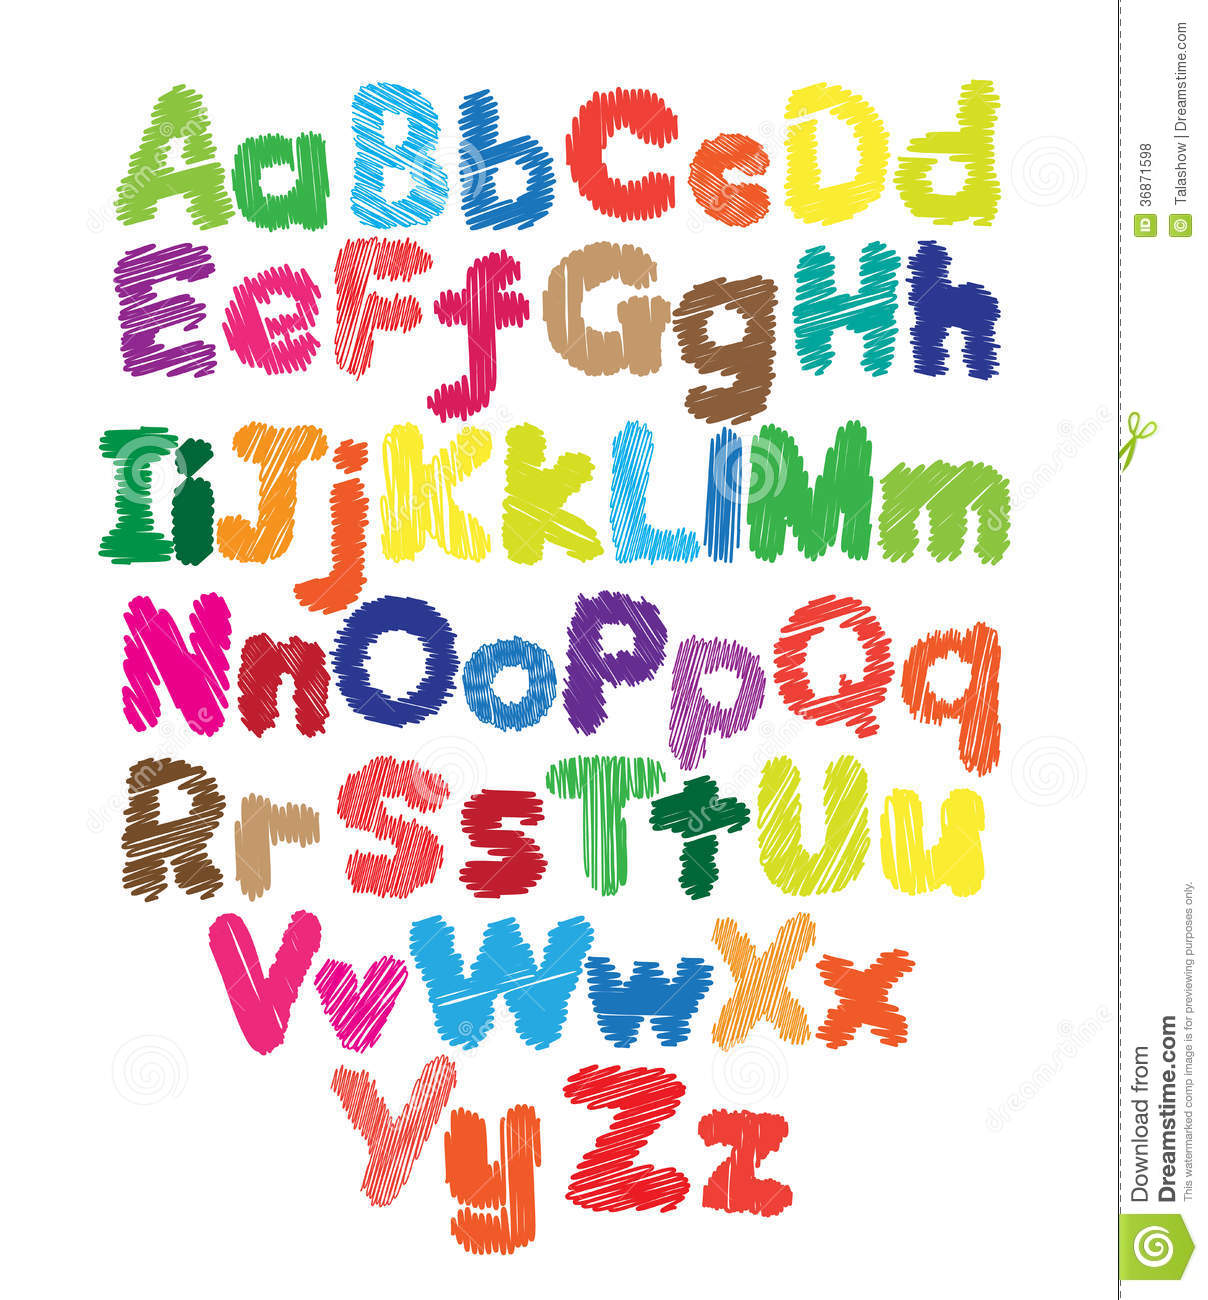 Clipart Education Free Download